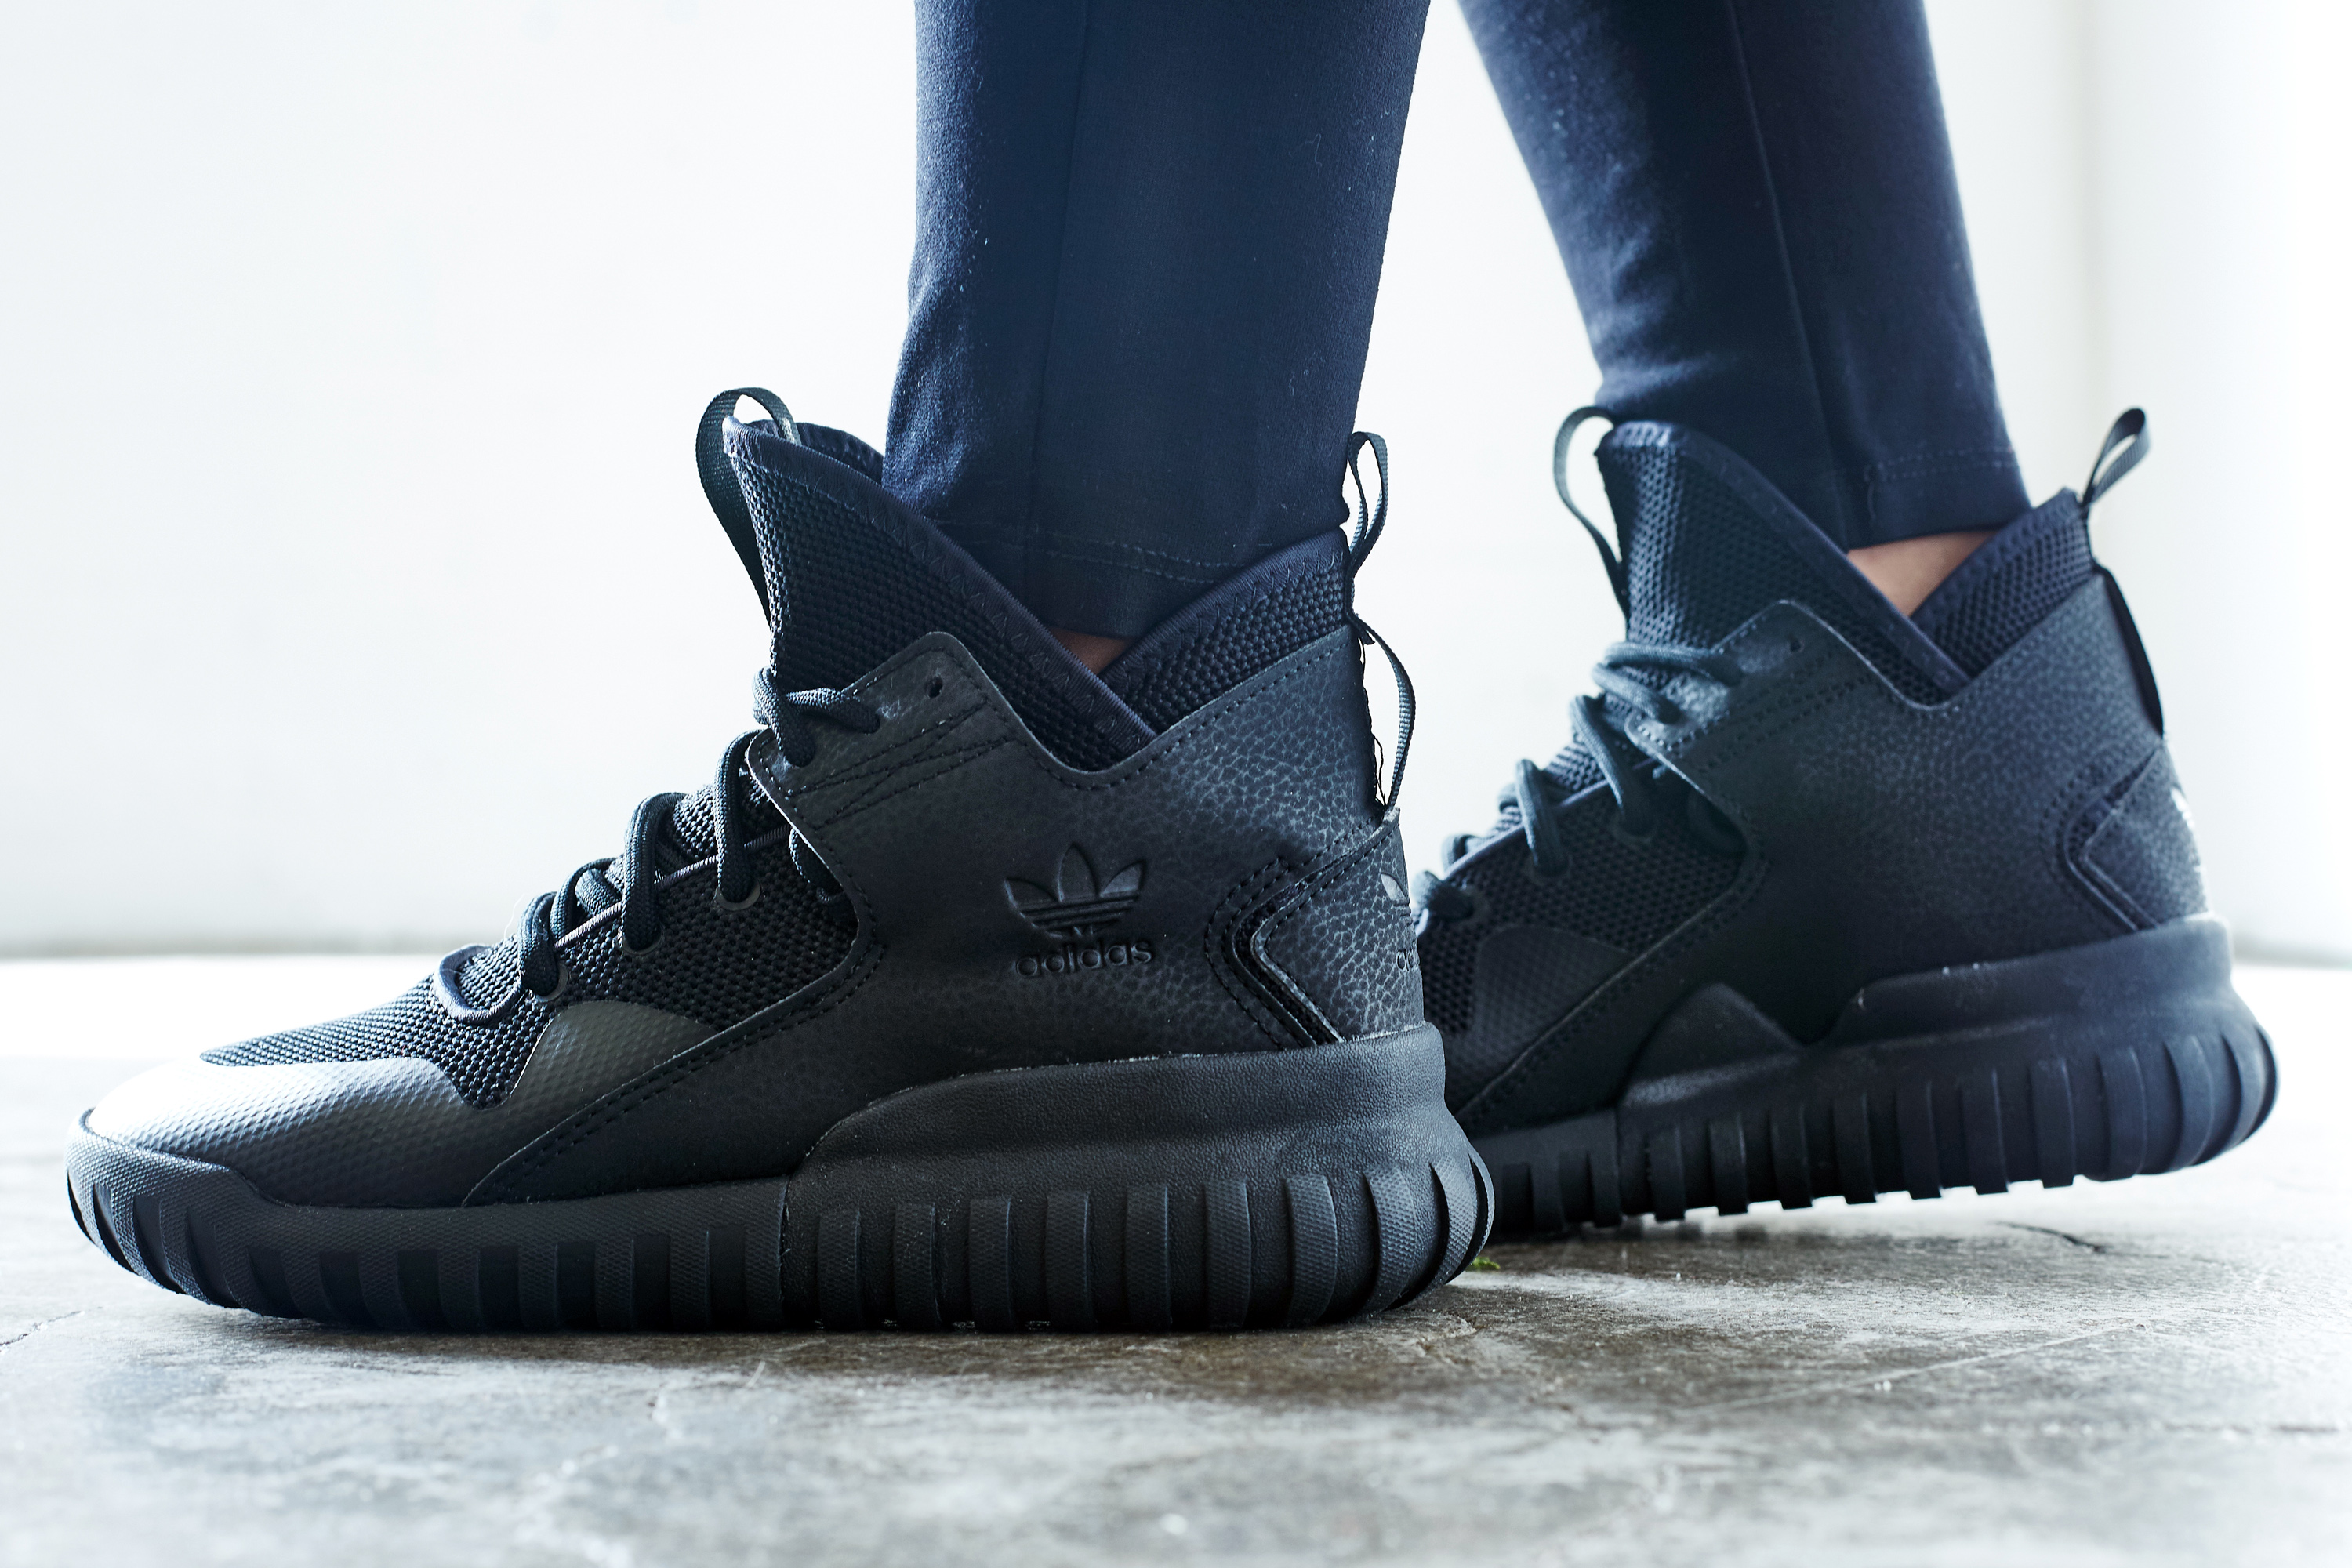 17 Best images about Adidas Tubular on Pinterest Models, Sneakers